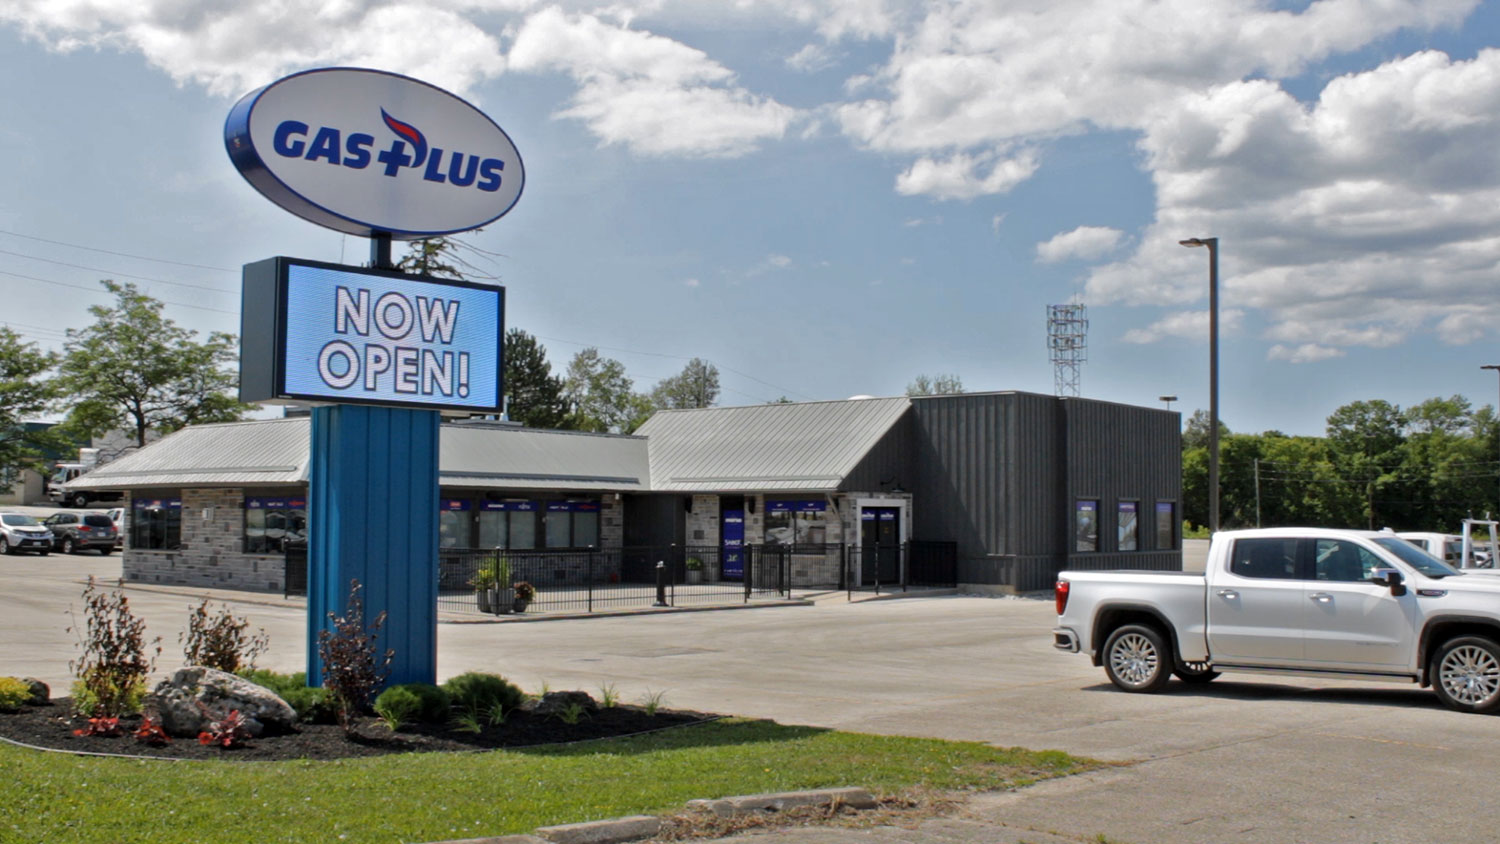 Gas Plus Exterior Showroom and Road Sign